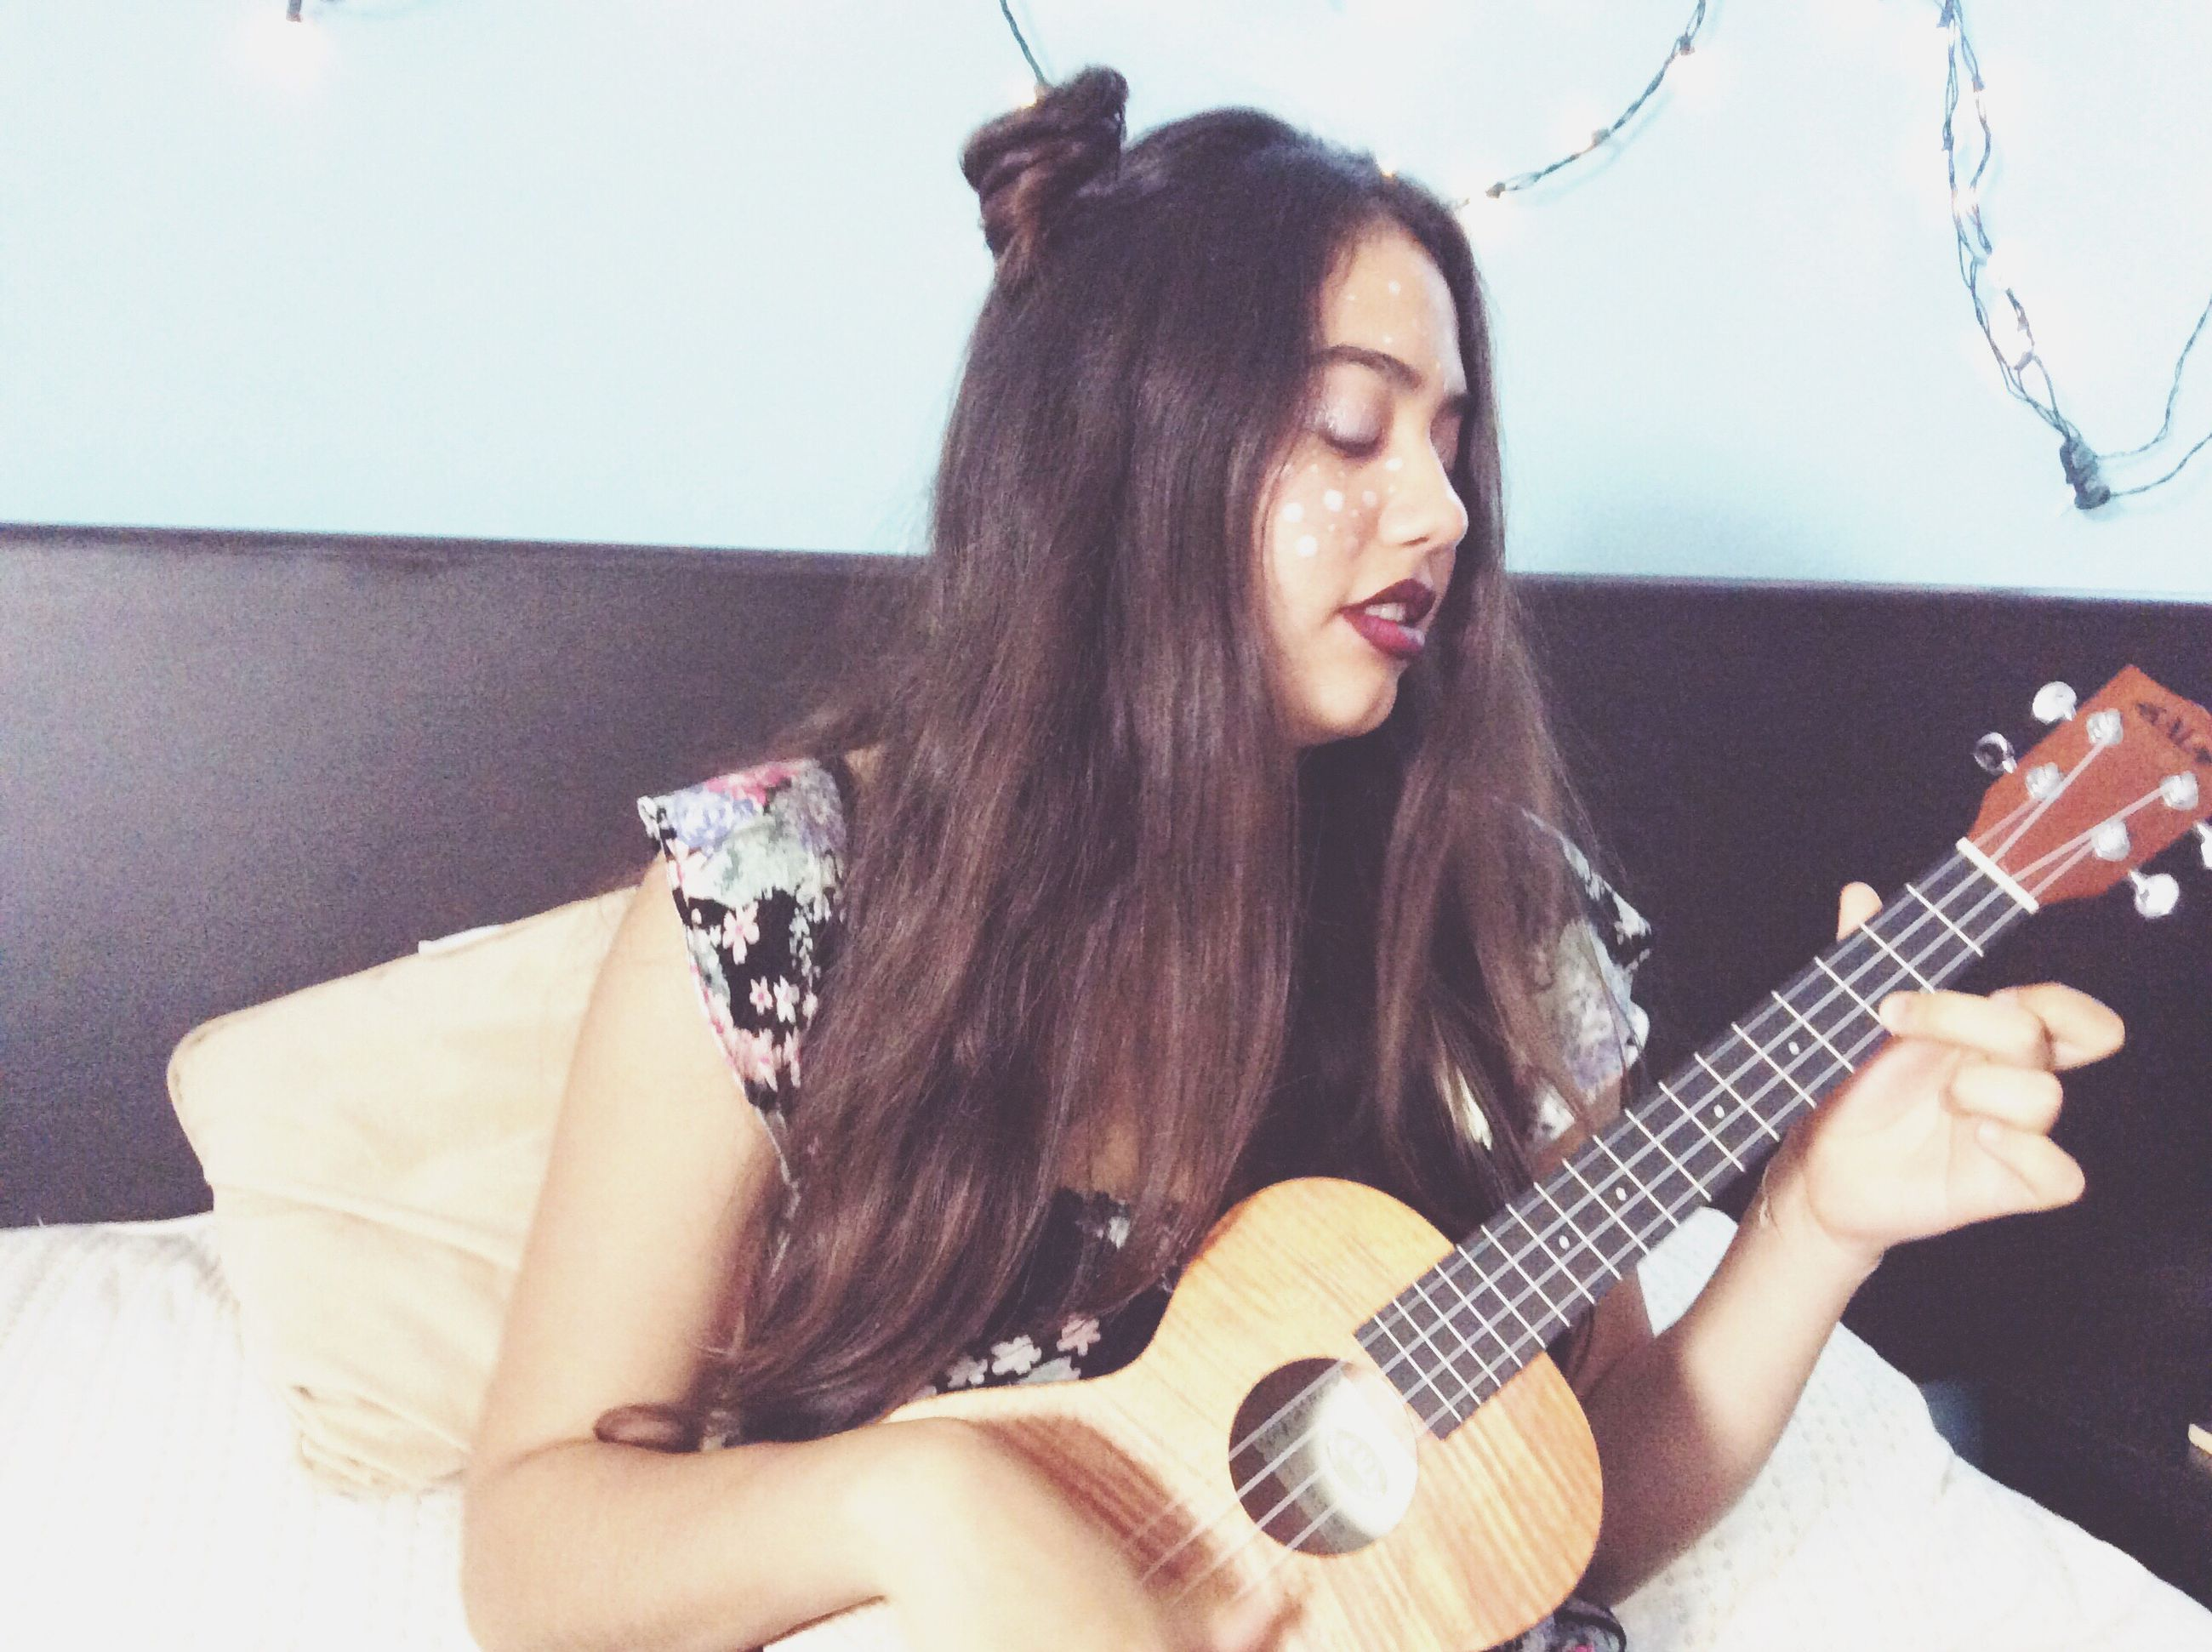 young adult, music, young women, lifestyles, home interior, long hair, indoors, one person, real people, sitting, beauty, holding, playing, arts culture and entertainment, musical instrument, guitar, one young woman only, human hand, plucking an instrument, musician, people, adult, day